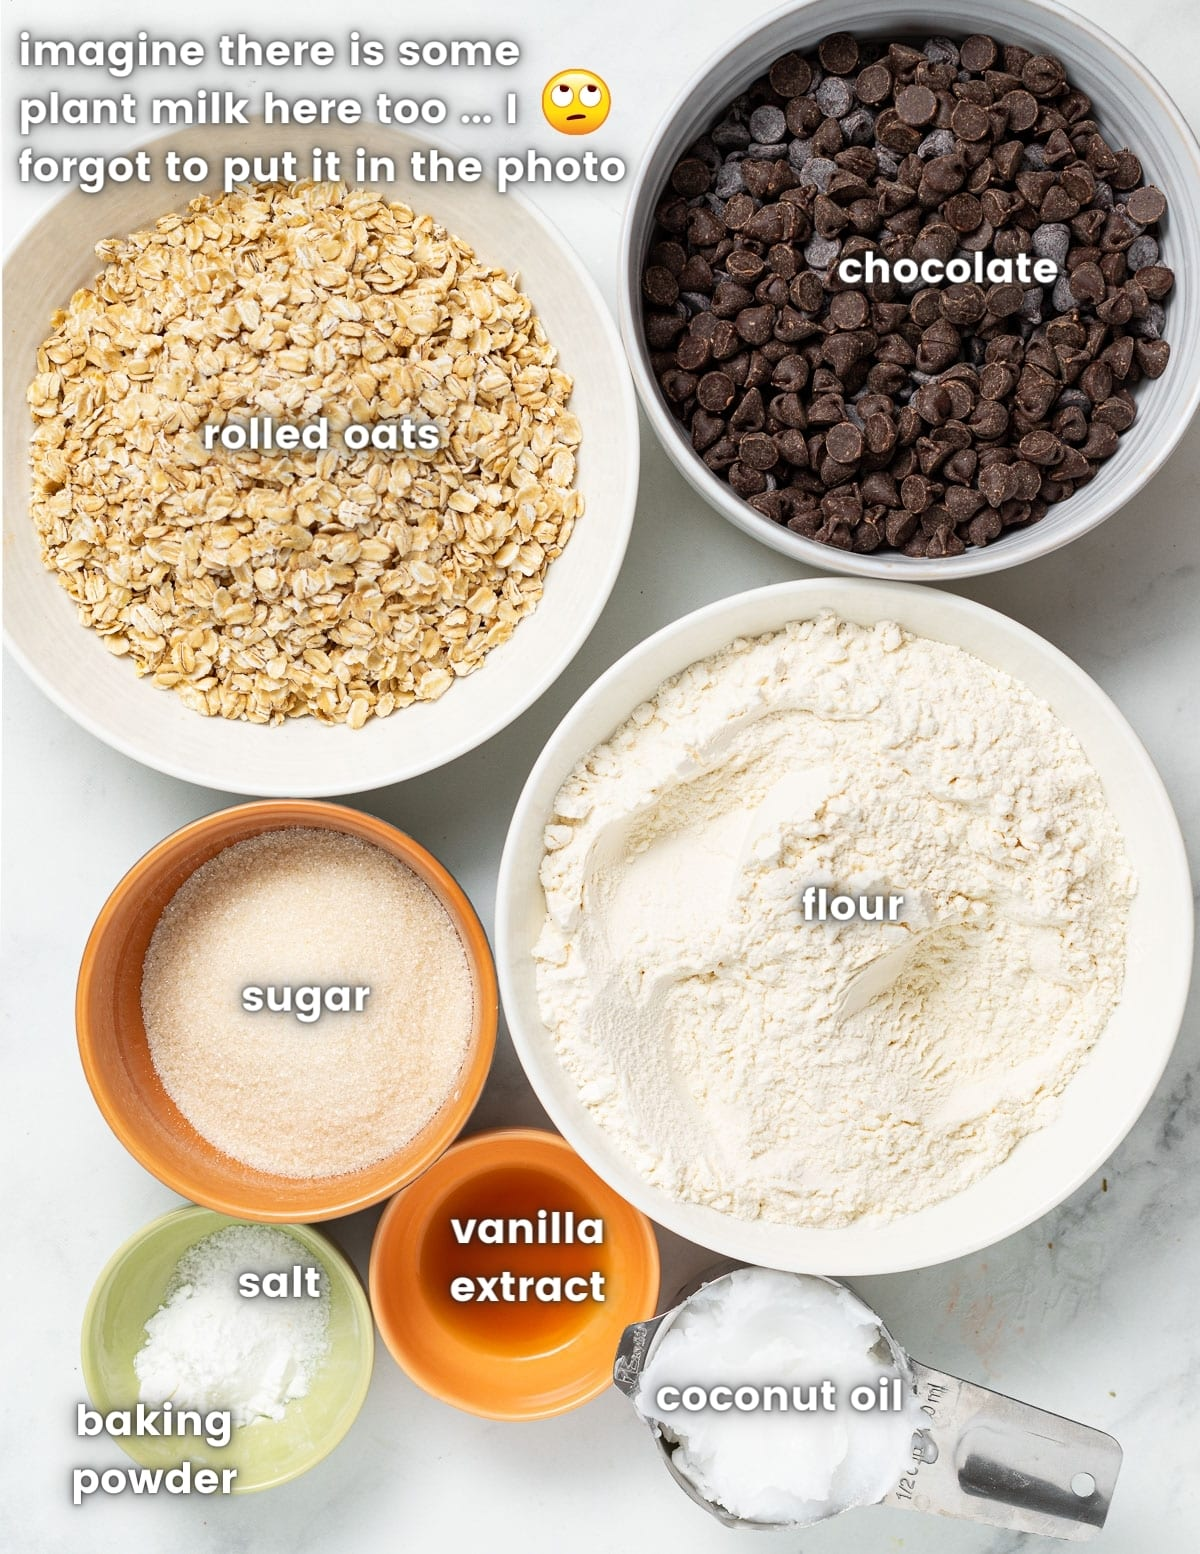 photograph of the ingredients as per the ingredients list